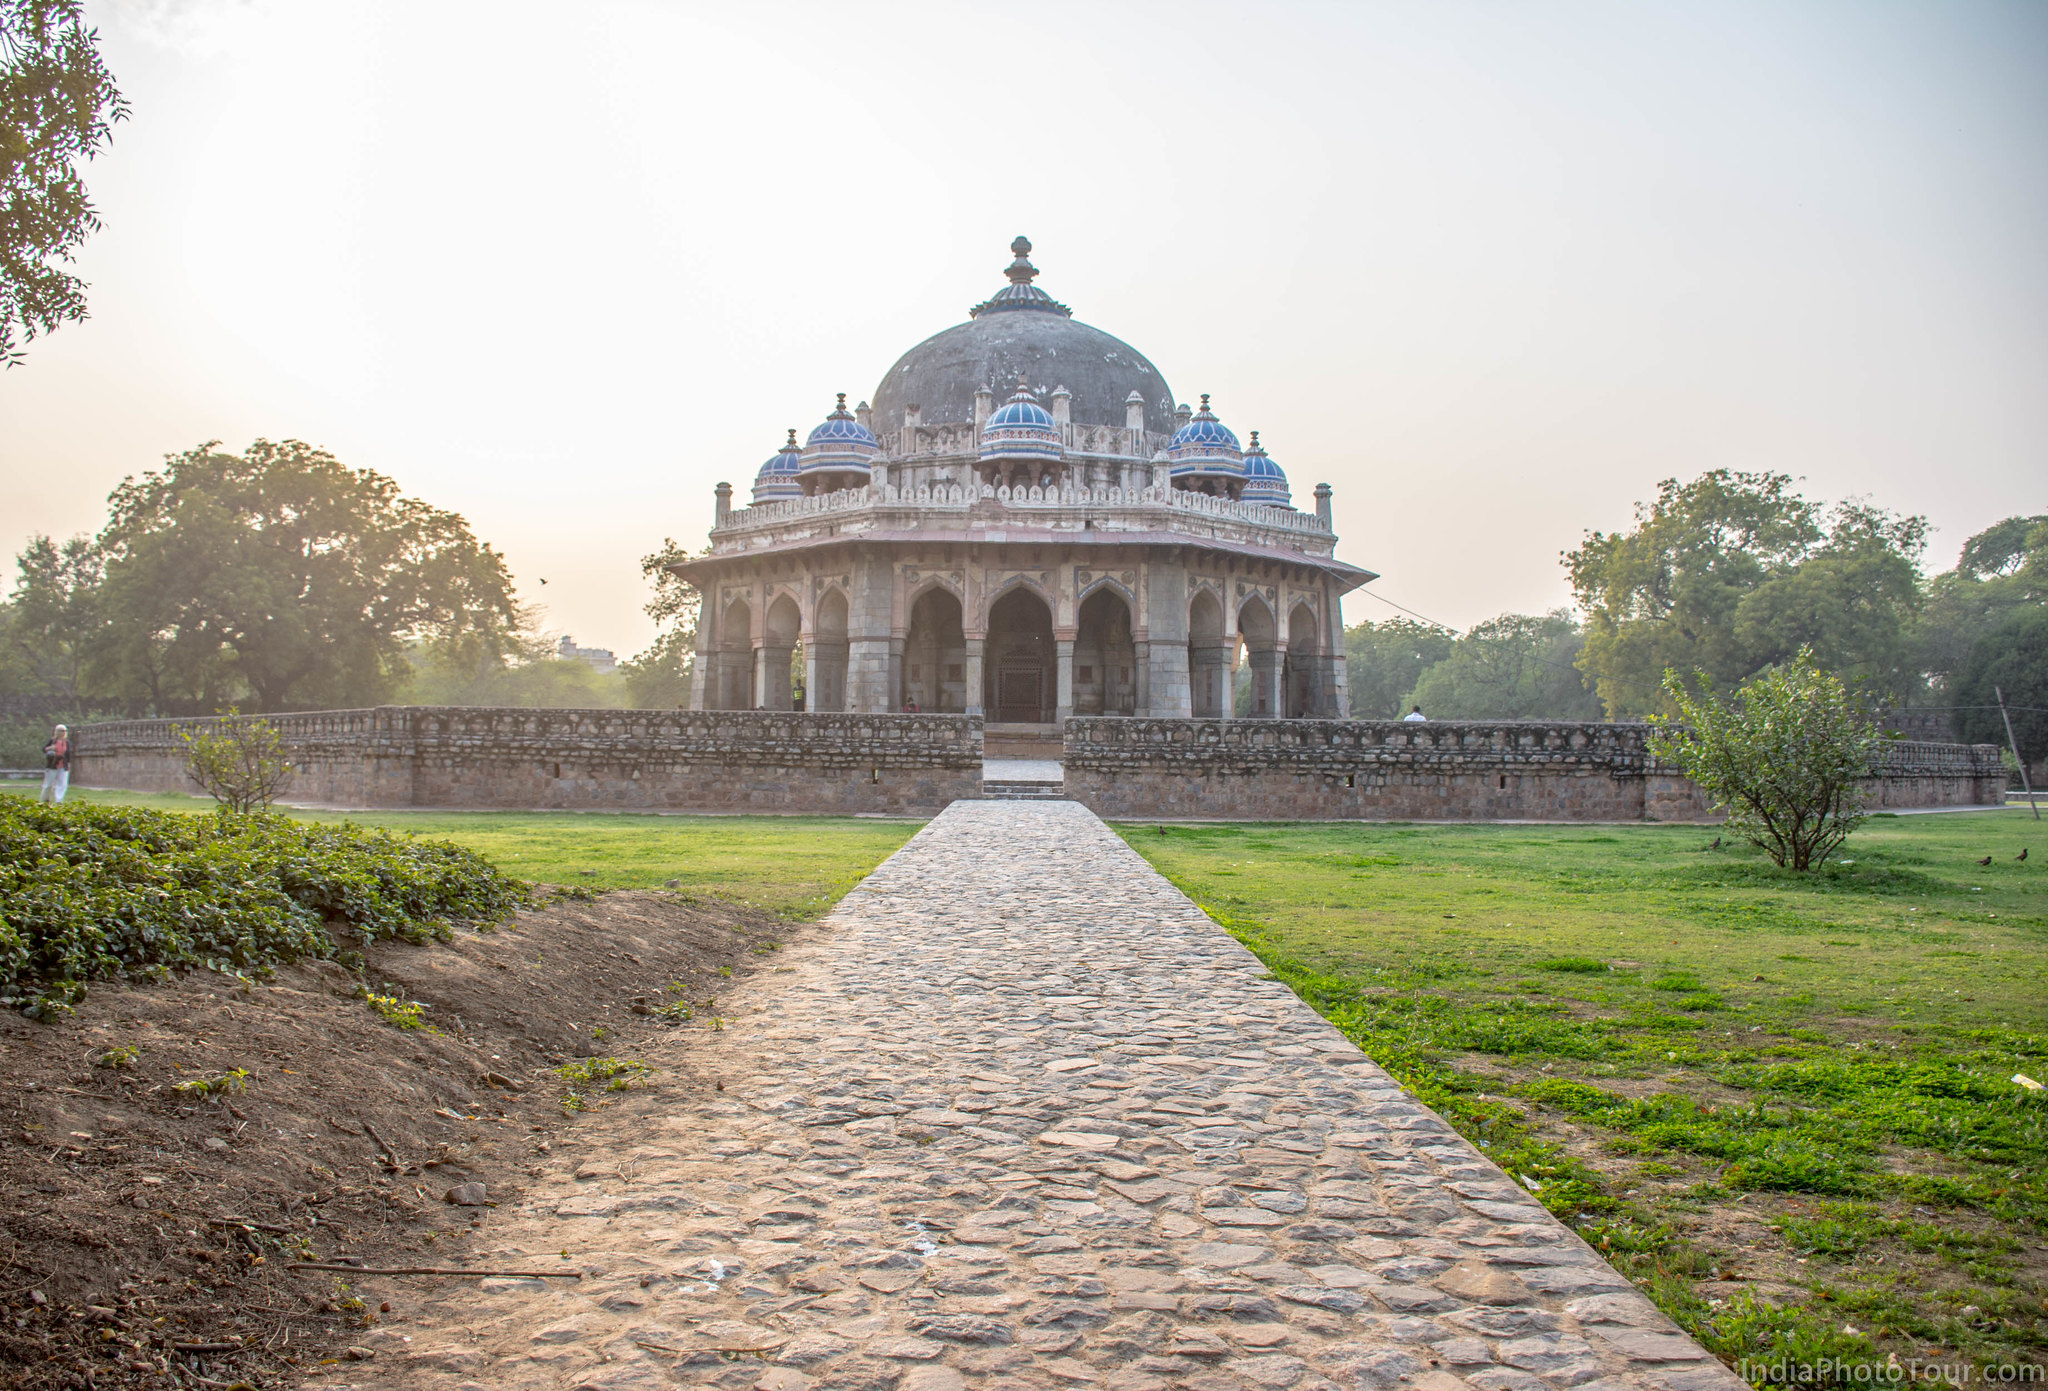 Another shot of Isa Khan's tomb from a different side